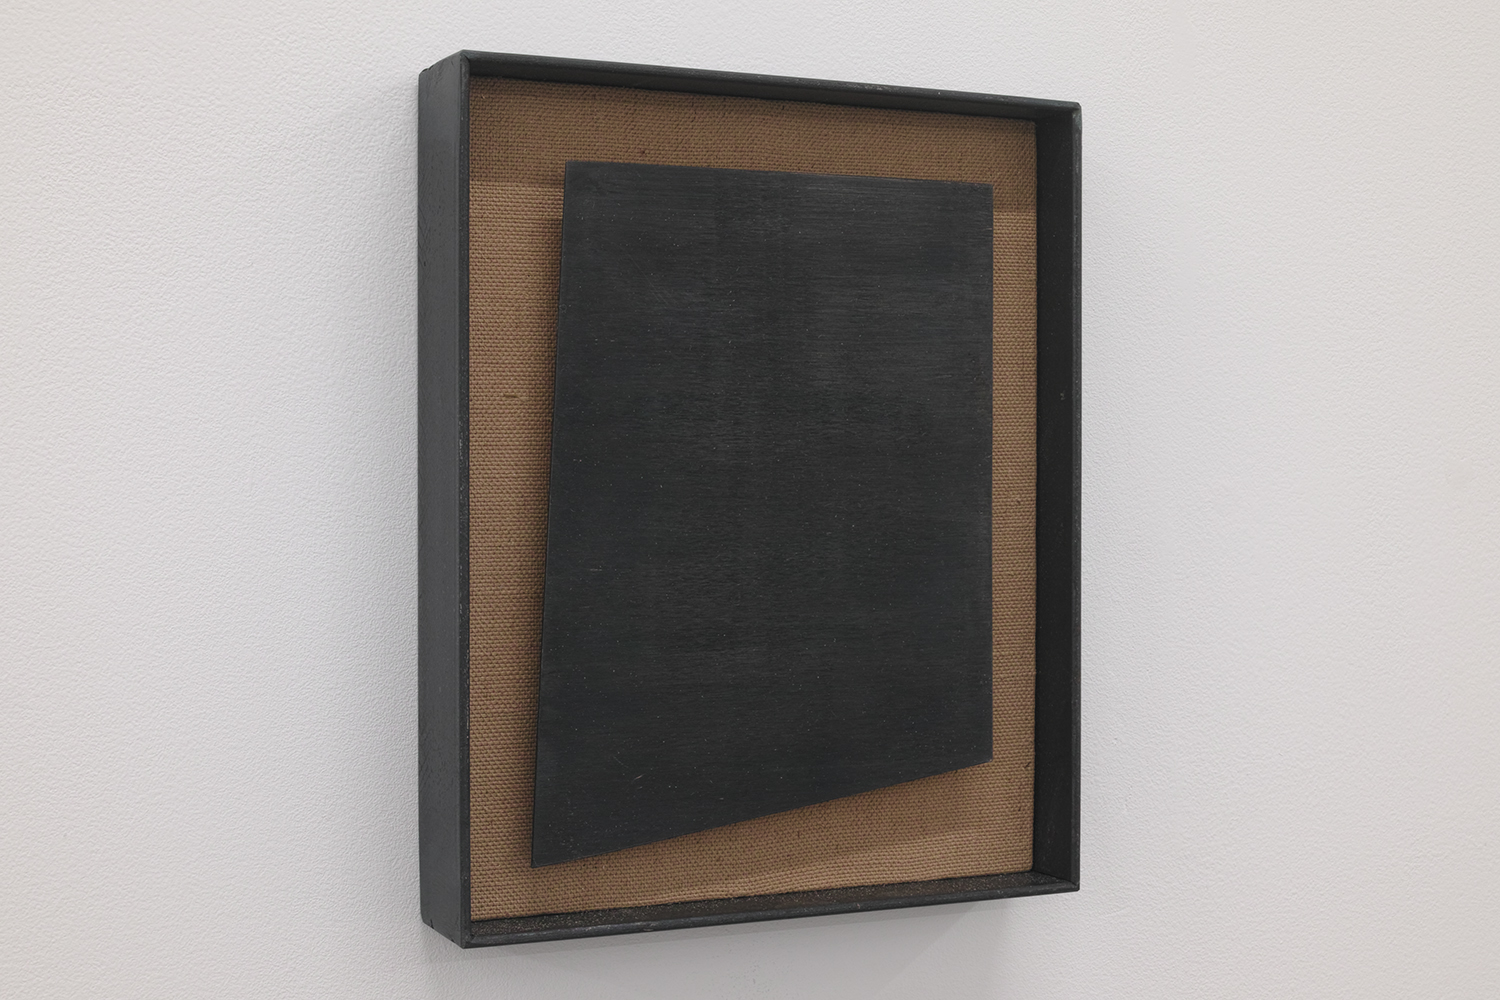 四角形を作る4 本の直線/4 straight lines to make a rectangle|Linen, copper plate on the panel, iron|200 x 165 x 30 mm|2019<br>Sold